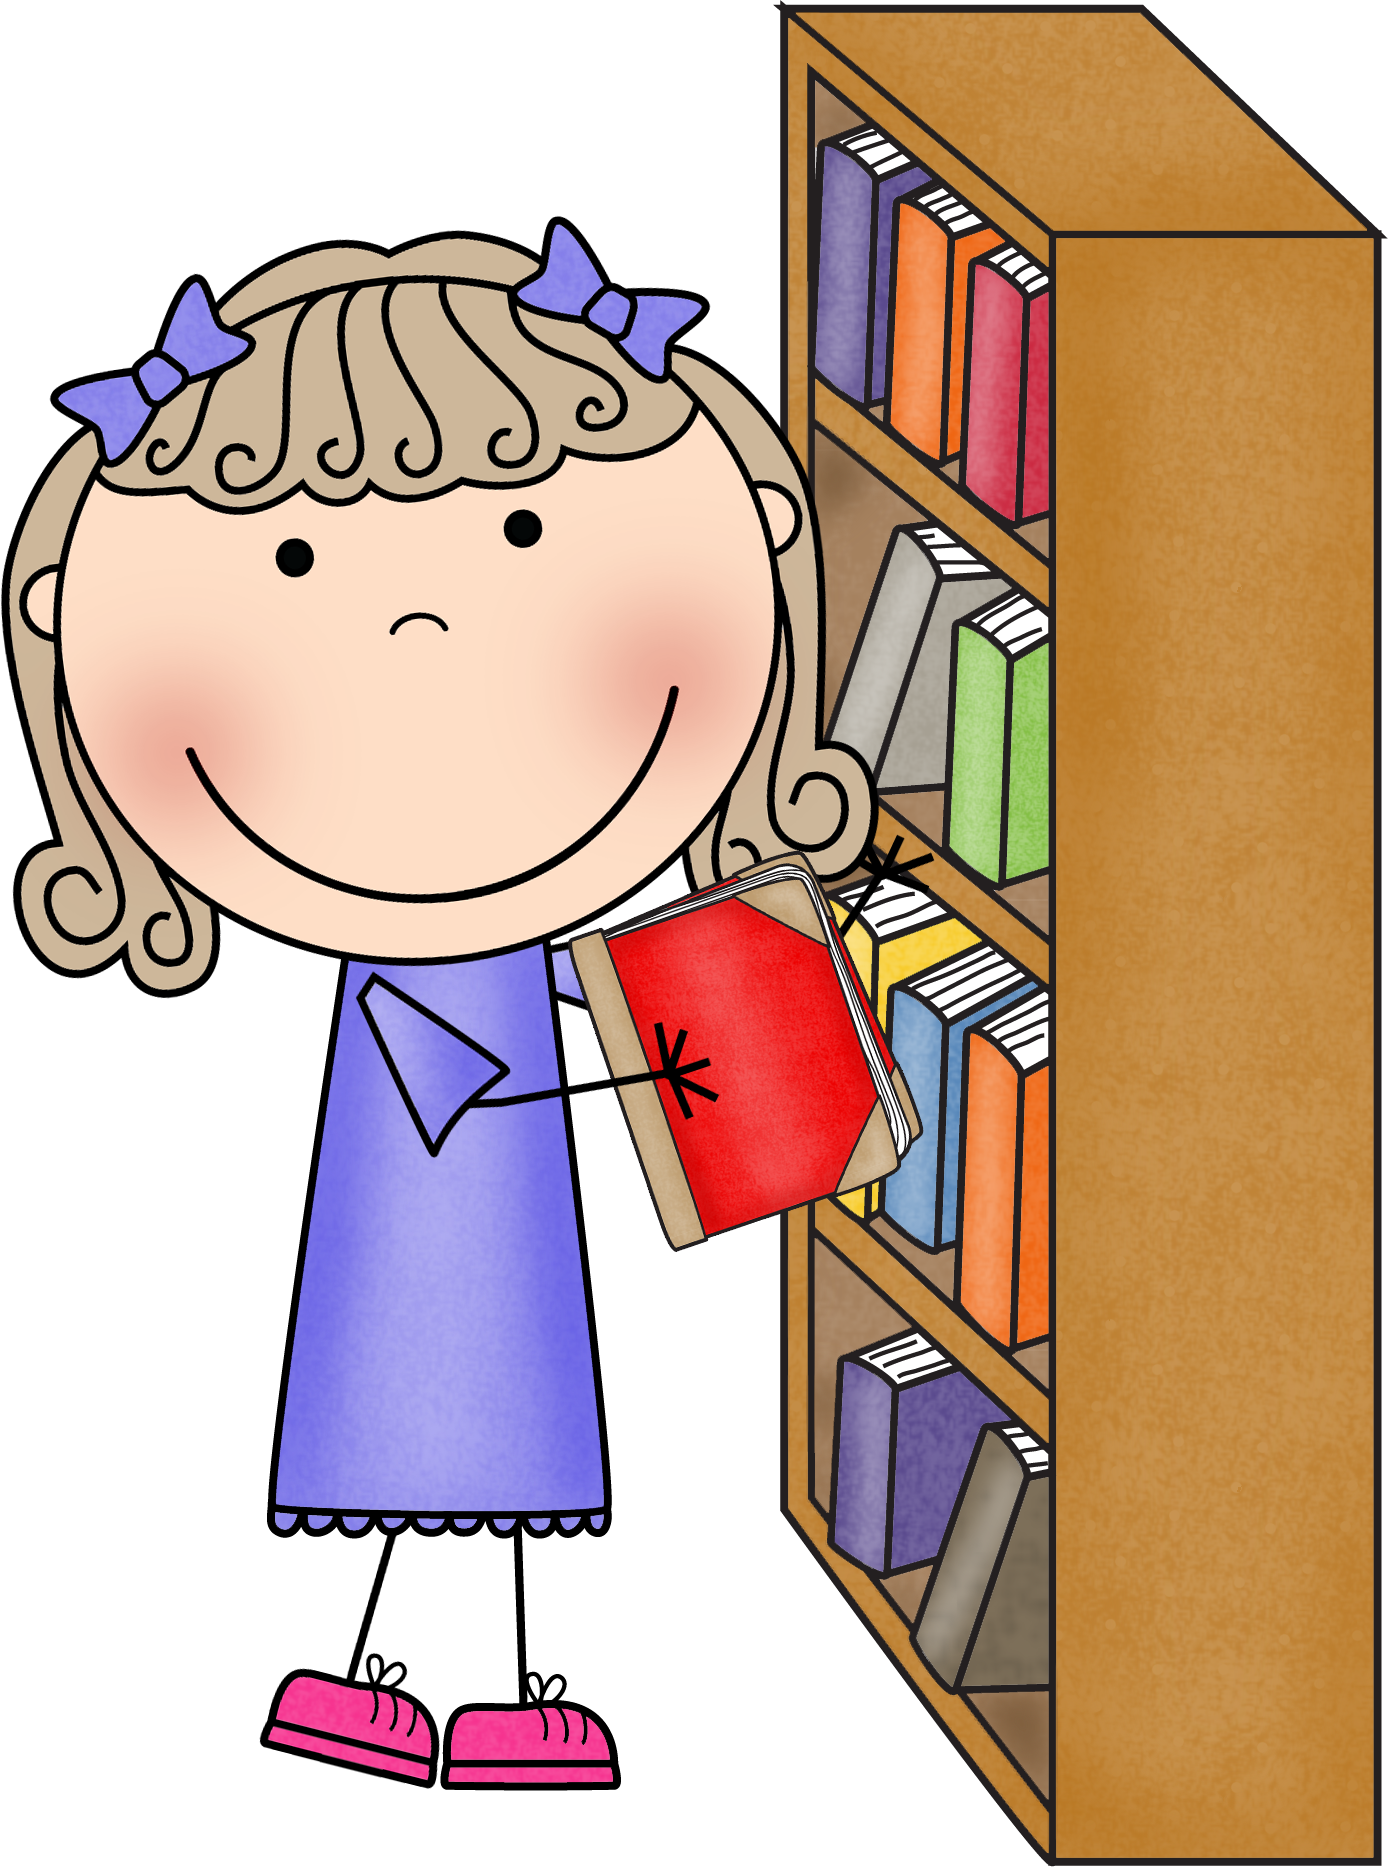 School agenda clipart svg download Pin by Liliane Moreira on Evangelização | Pinterest svg download